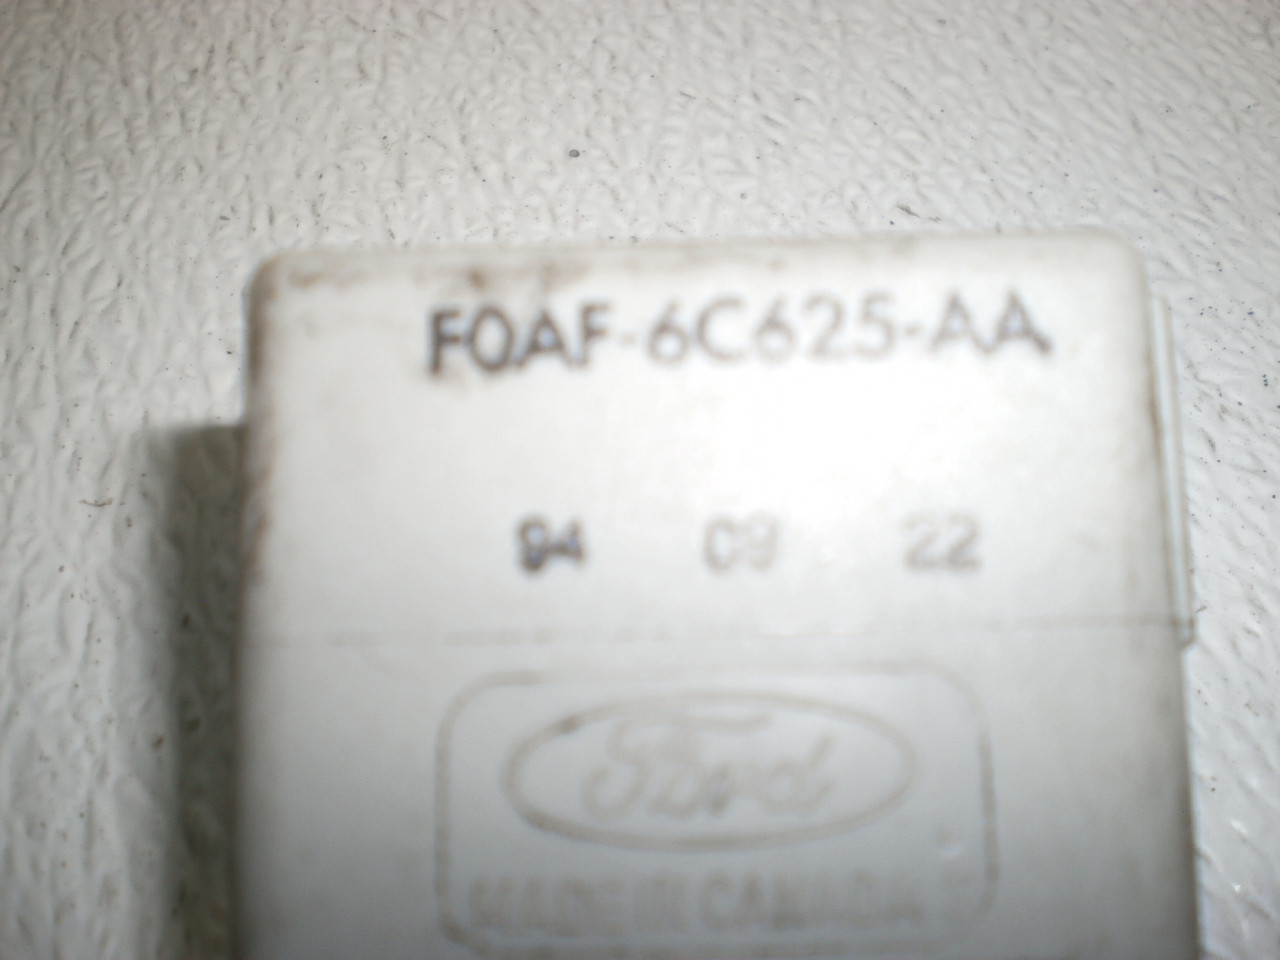 1994 1998 ford mustang under dash low oil level sensing module box f0af 6c625 aa [ 1280 x 960 Pixel ]